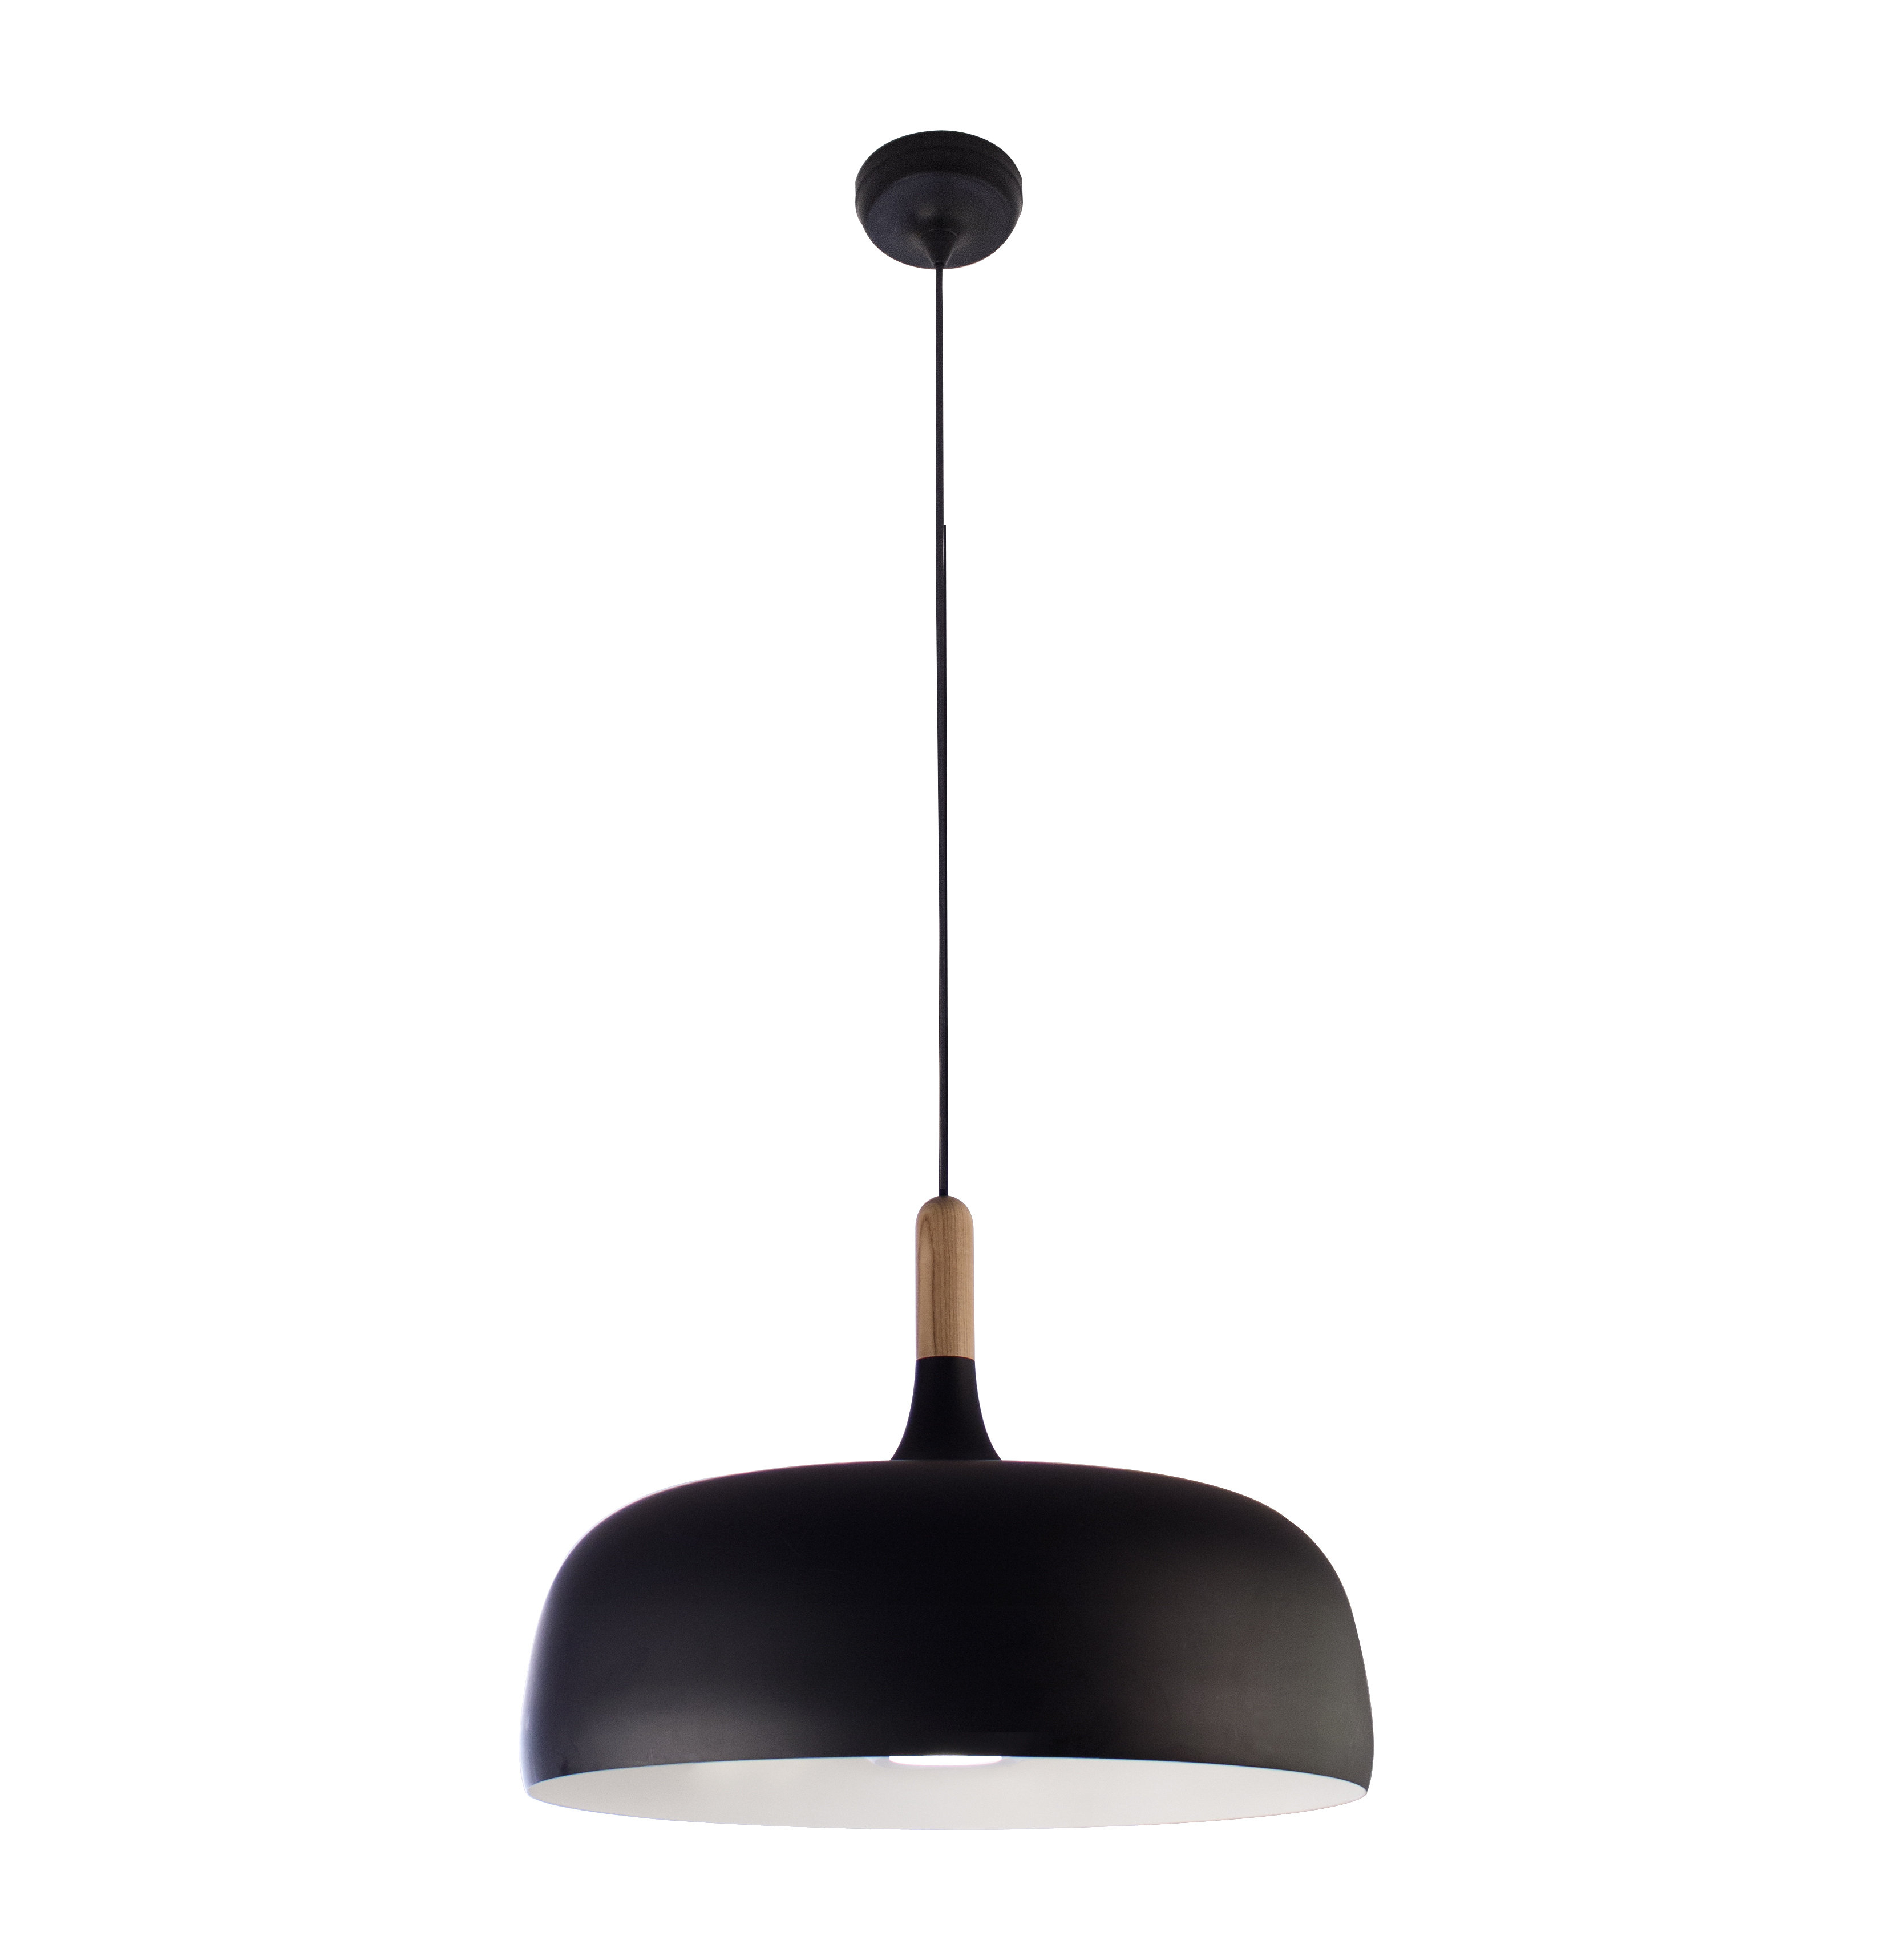 Conover 1 Light Dome Pendants With Fashionable Ryker 1 Light Single Dome Pendant (View 7 of 25)